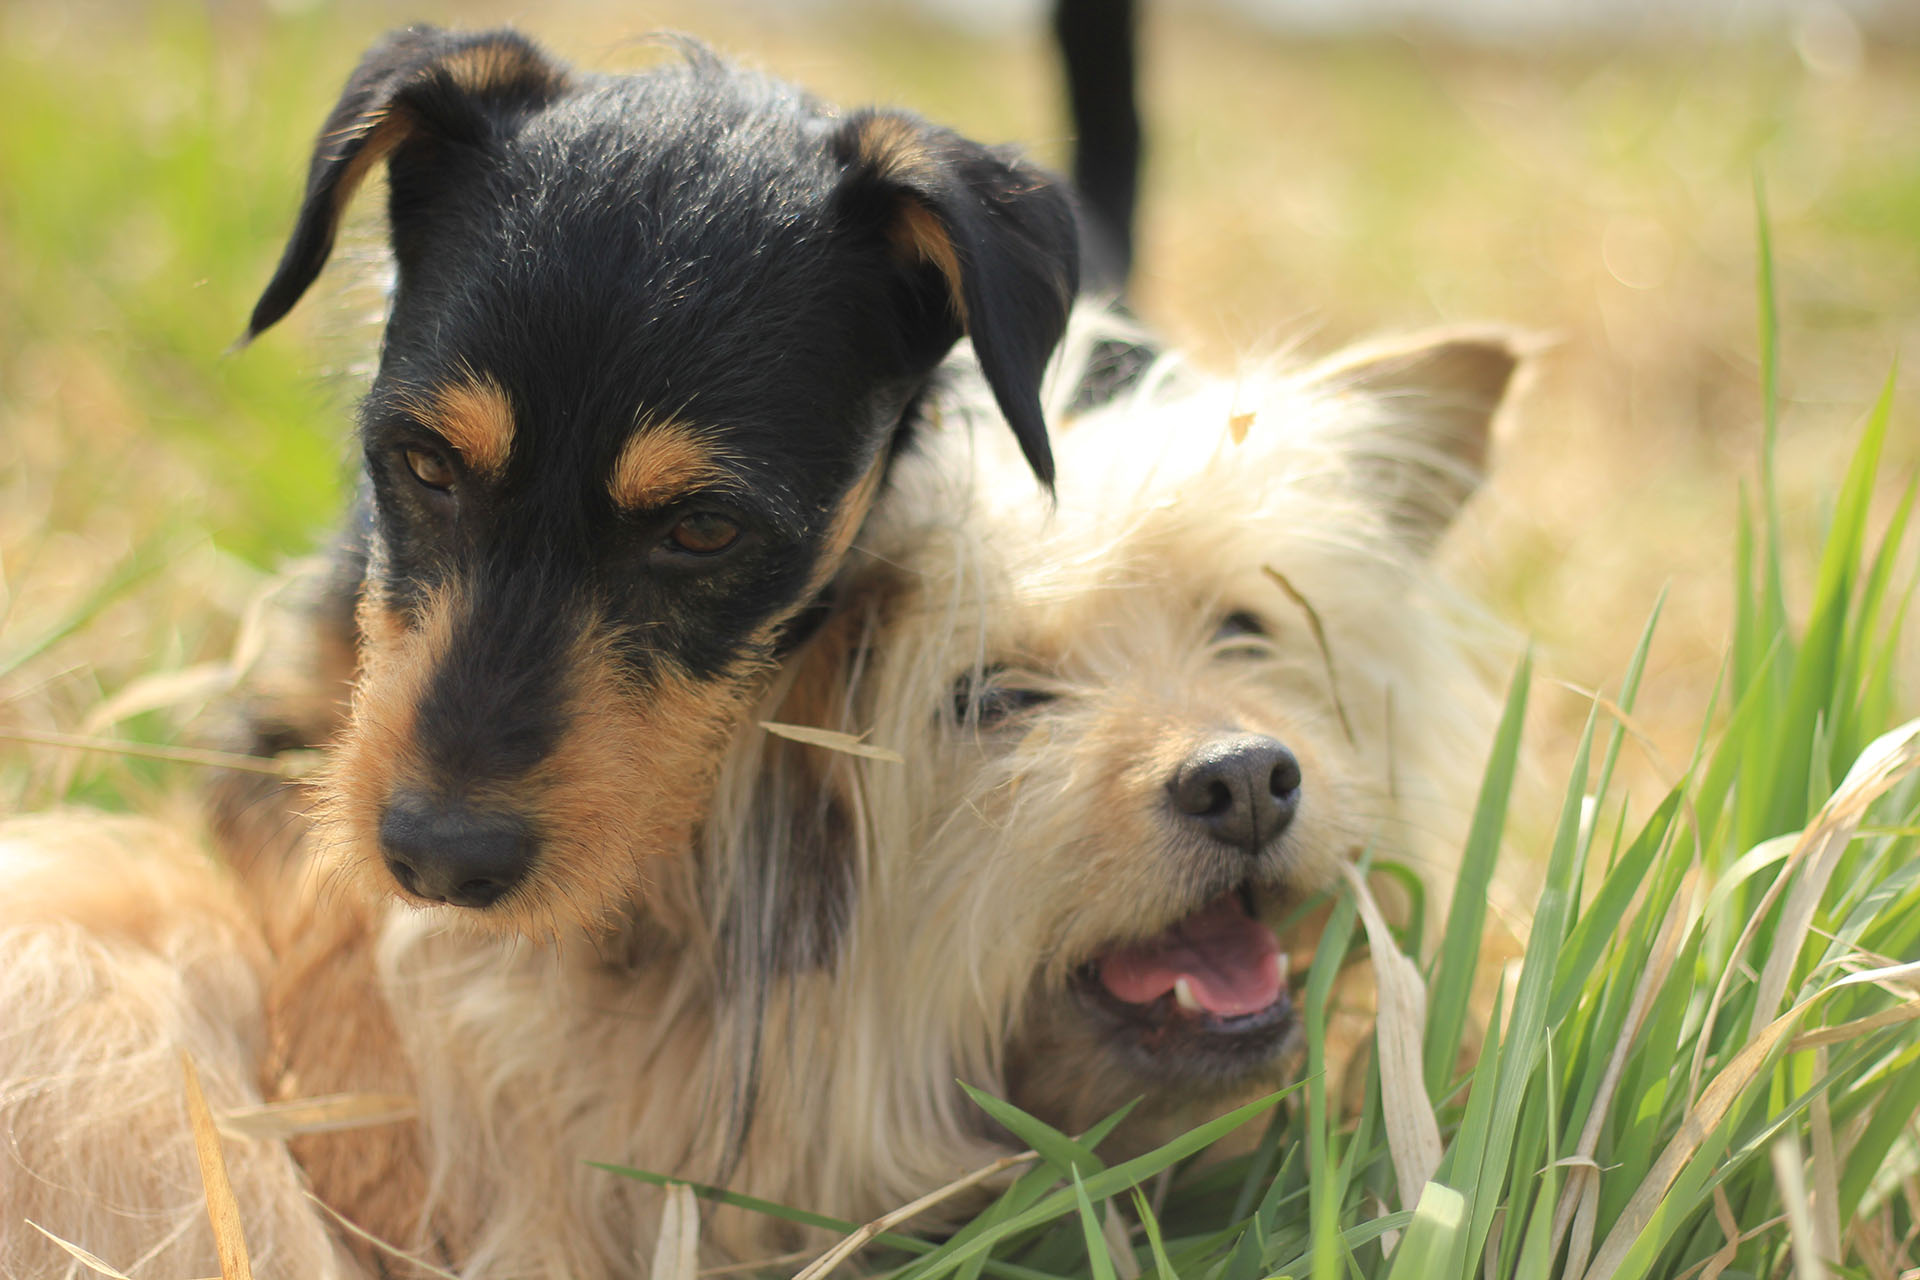 Two dogs playing together in the grass.